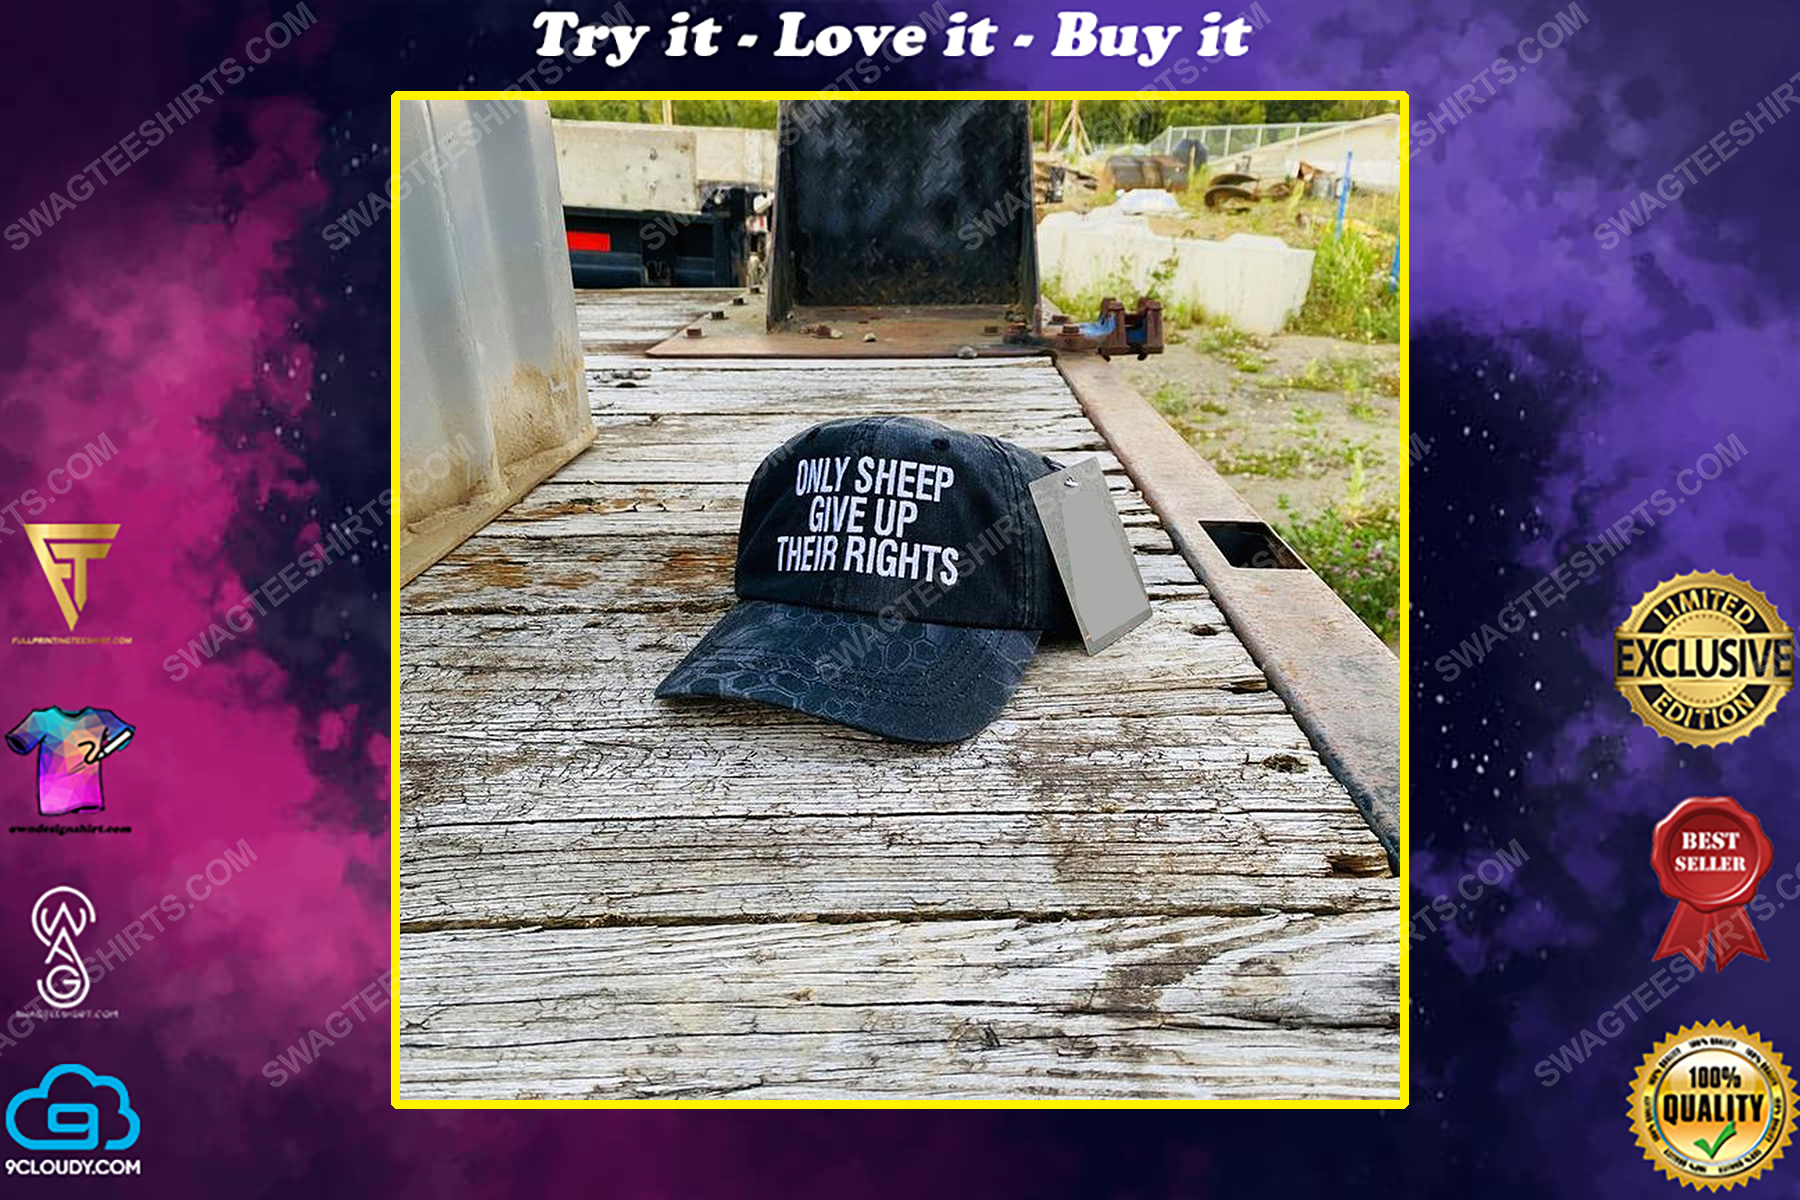 Only sheep give up their rights full print classic hat